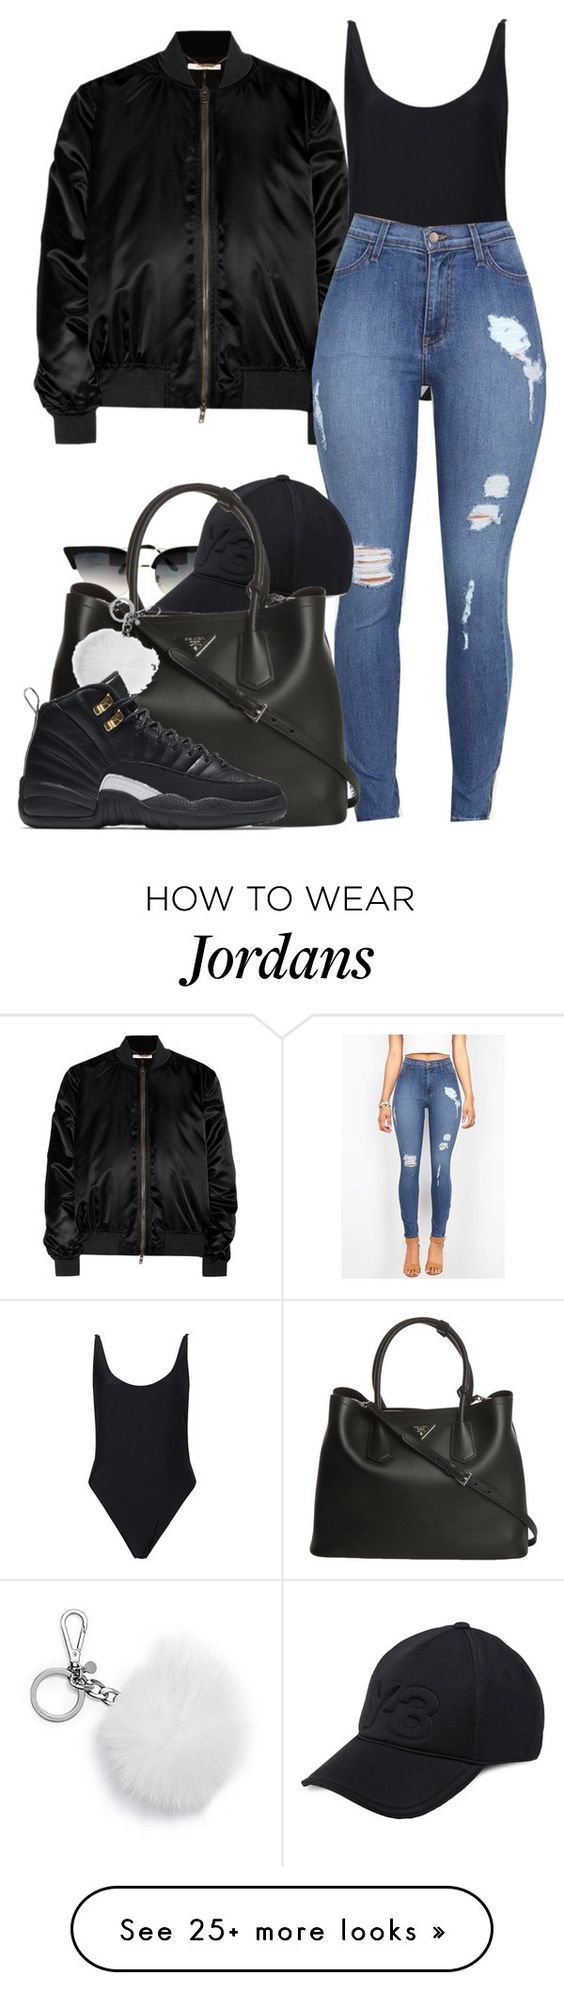 best 25 high heel jordans ideas on pinterest jordan heels nike